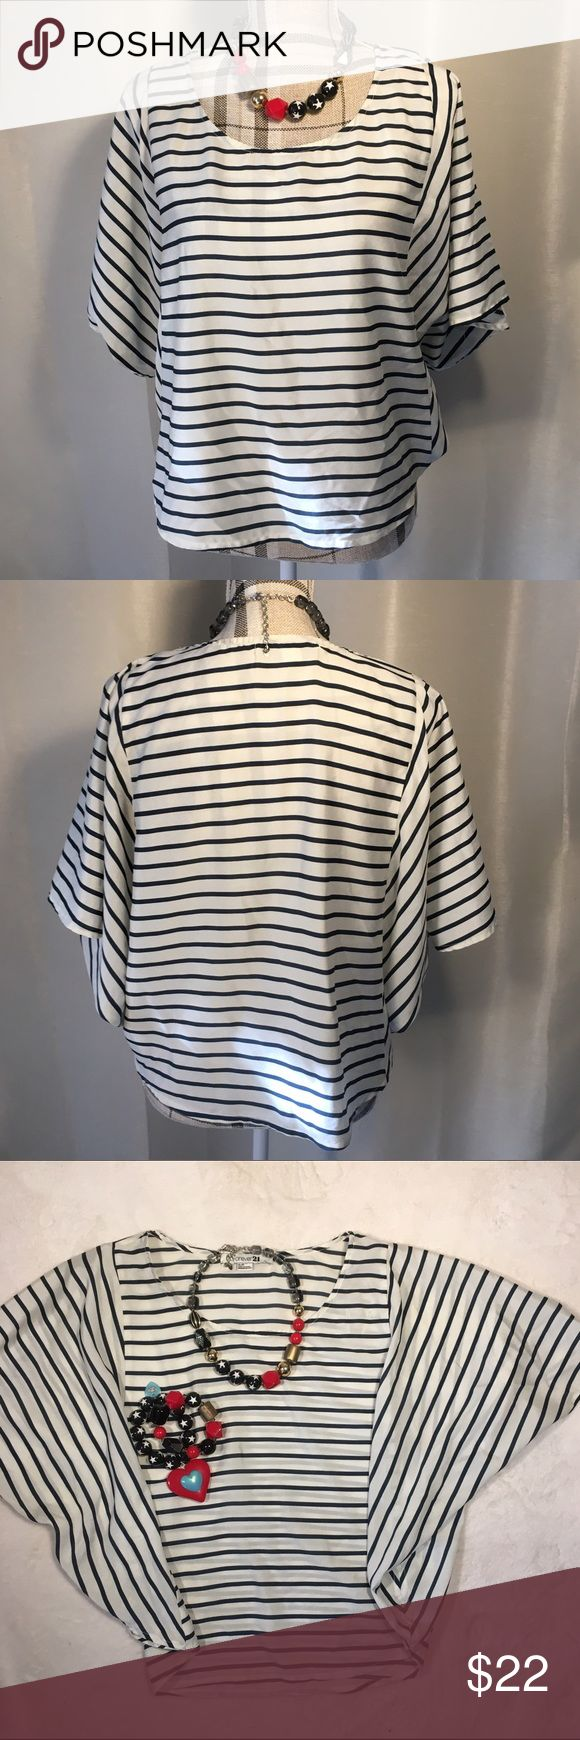 """Navy and white stripe top White and navy striped blouse. Fits """"pancho style"""". Is very flattering on. Only worn once Forever 21 Tops Blouses"""